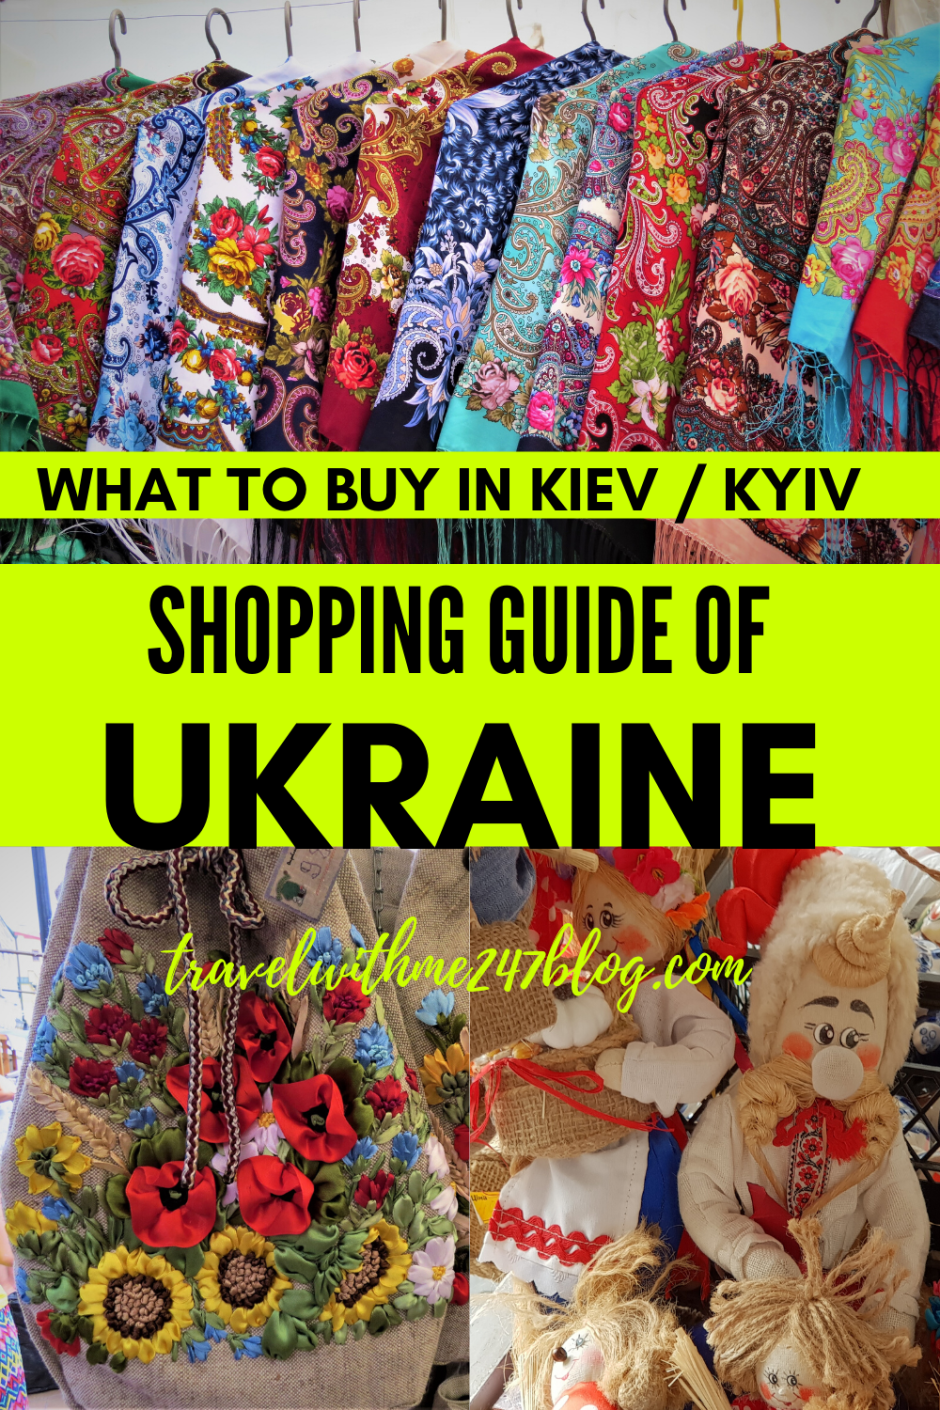 Shopping guide of Kiev, Ukraine